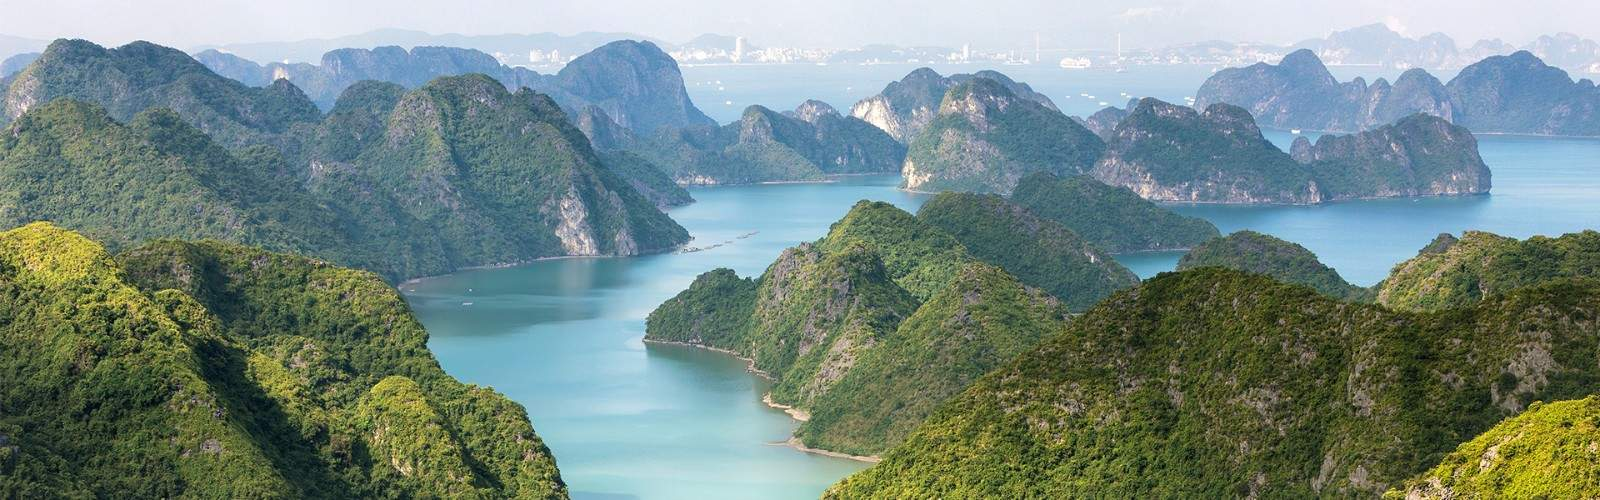 Discover Halong Bay Tour | Wendy Wu Tours